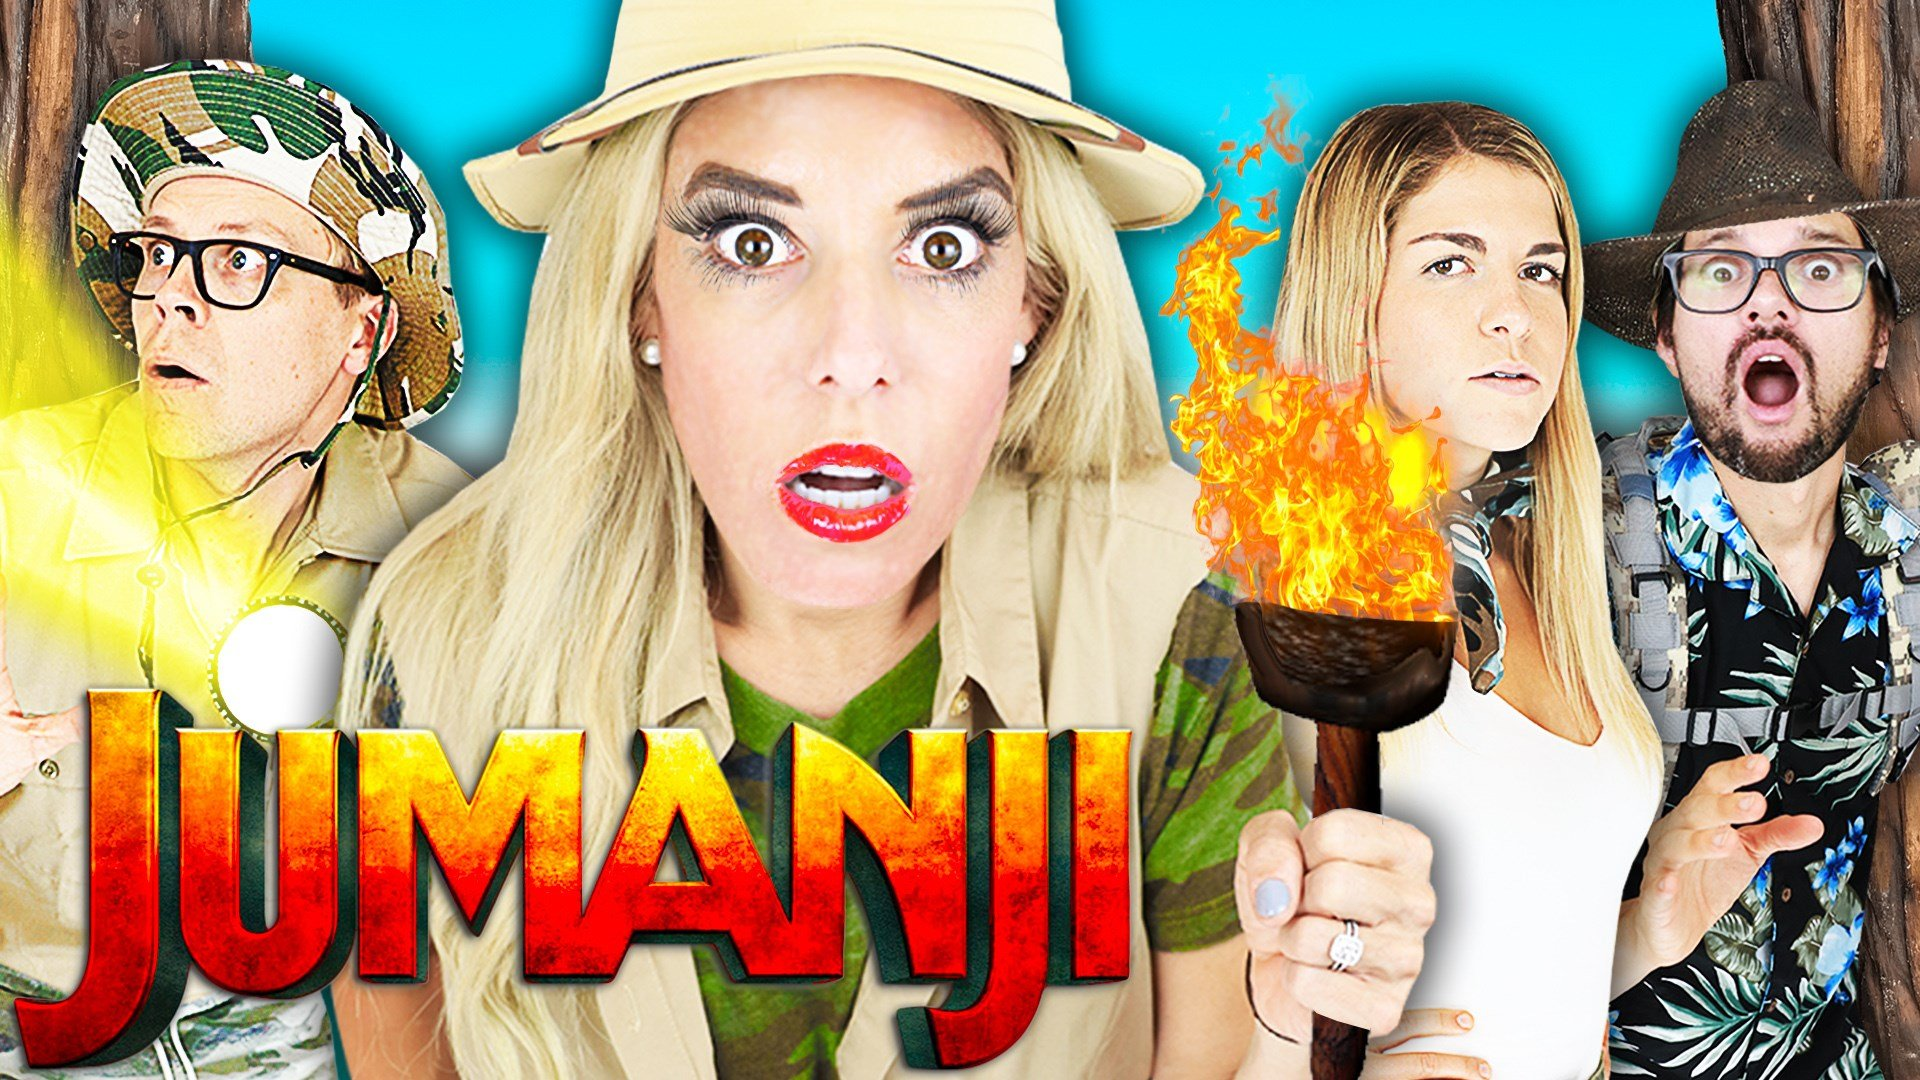 Rebecca Zamolo Plays Giant Jumanji Game In Real Life To Win The Fox 40 Wicz Tv News Sports Weather Contests More